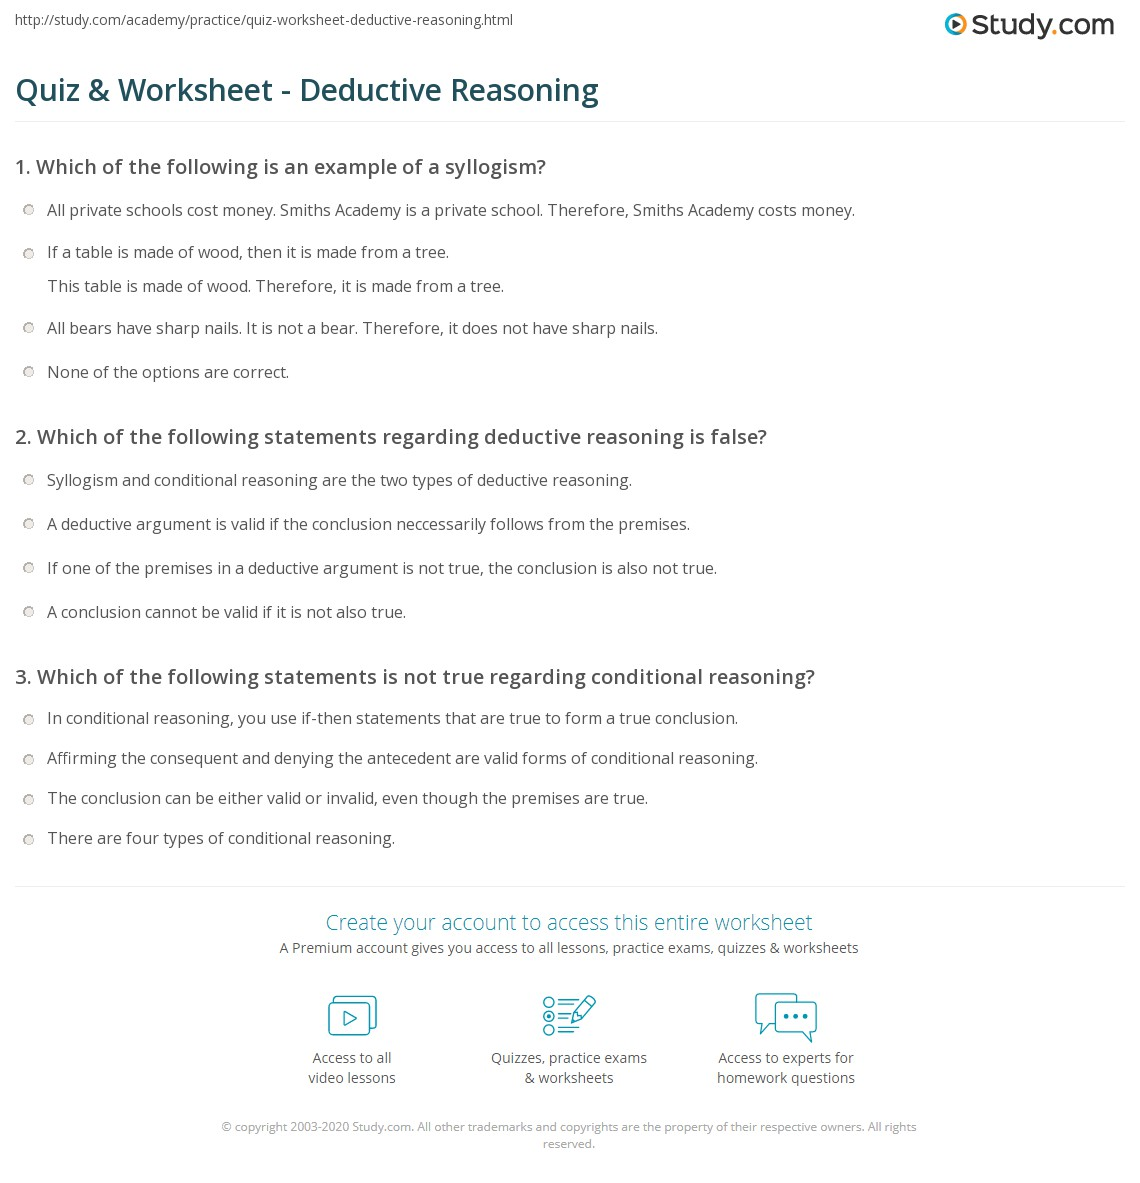 quiz worksheet deductive reasoning. Black Bedroom Furniture Sets. Home Design Ideas